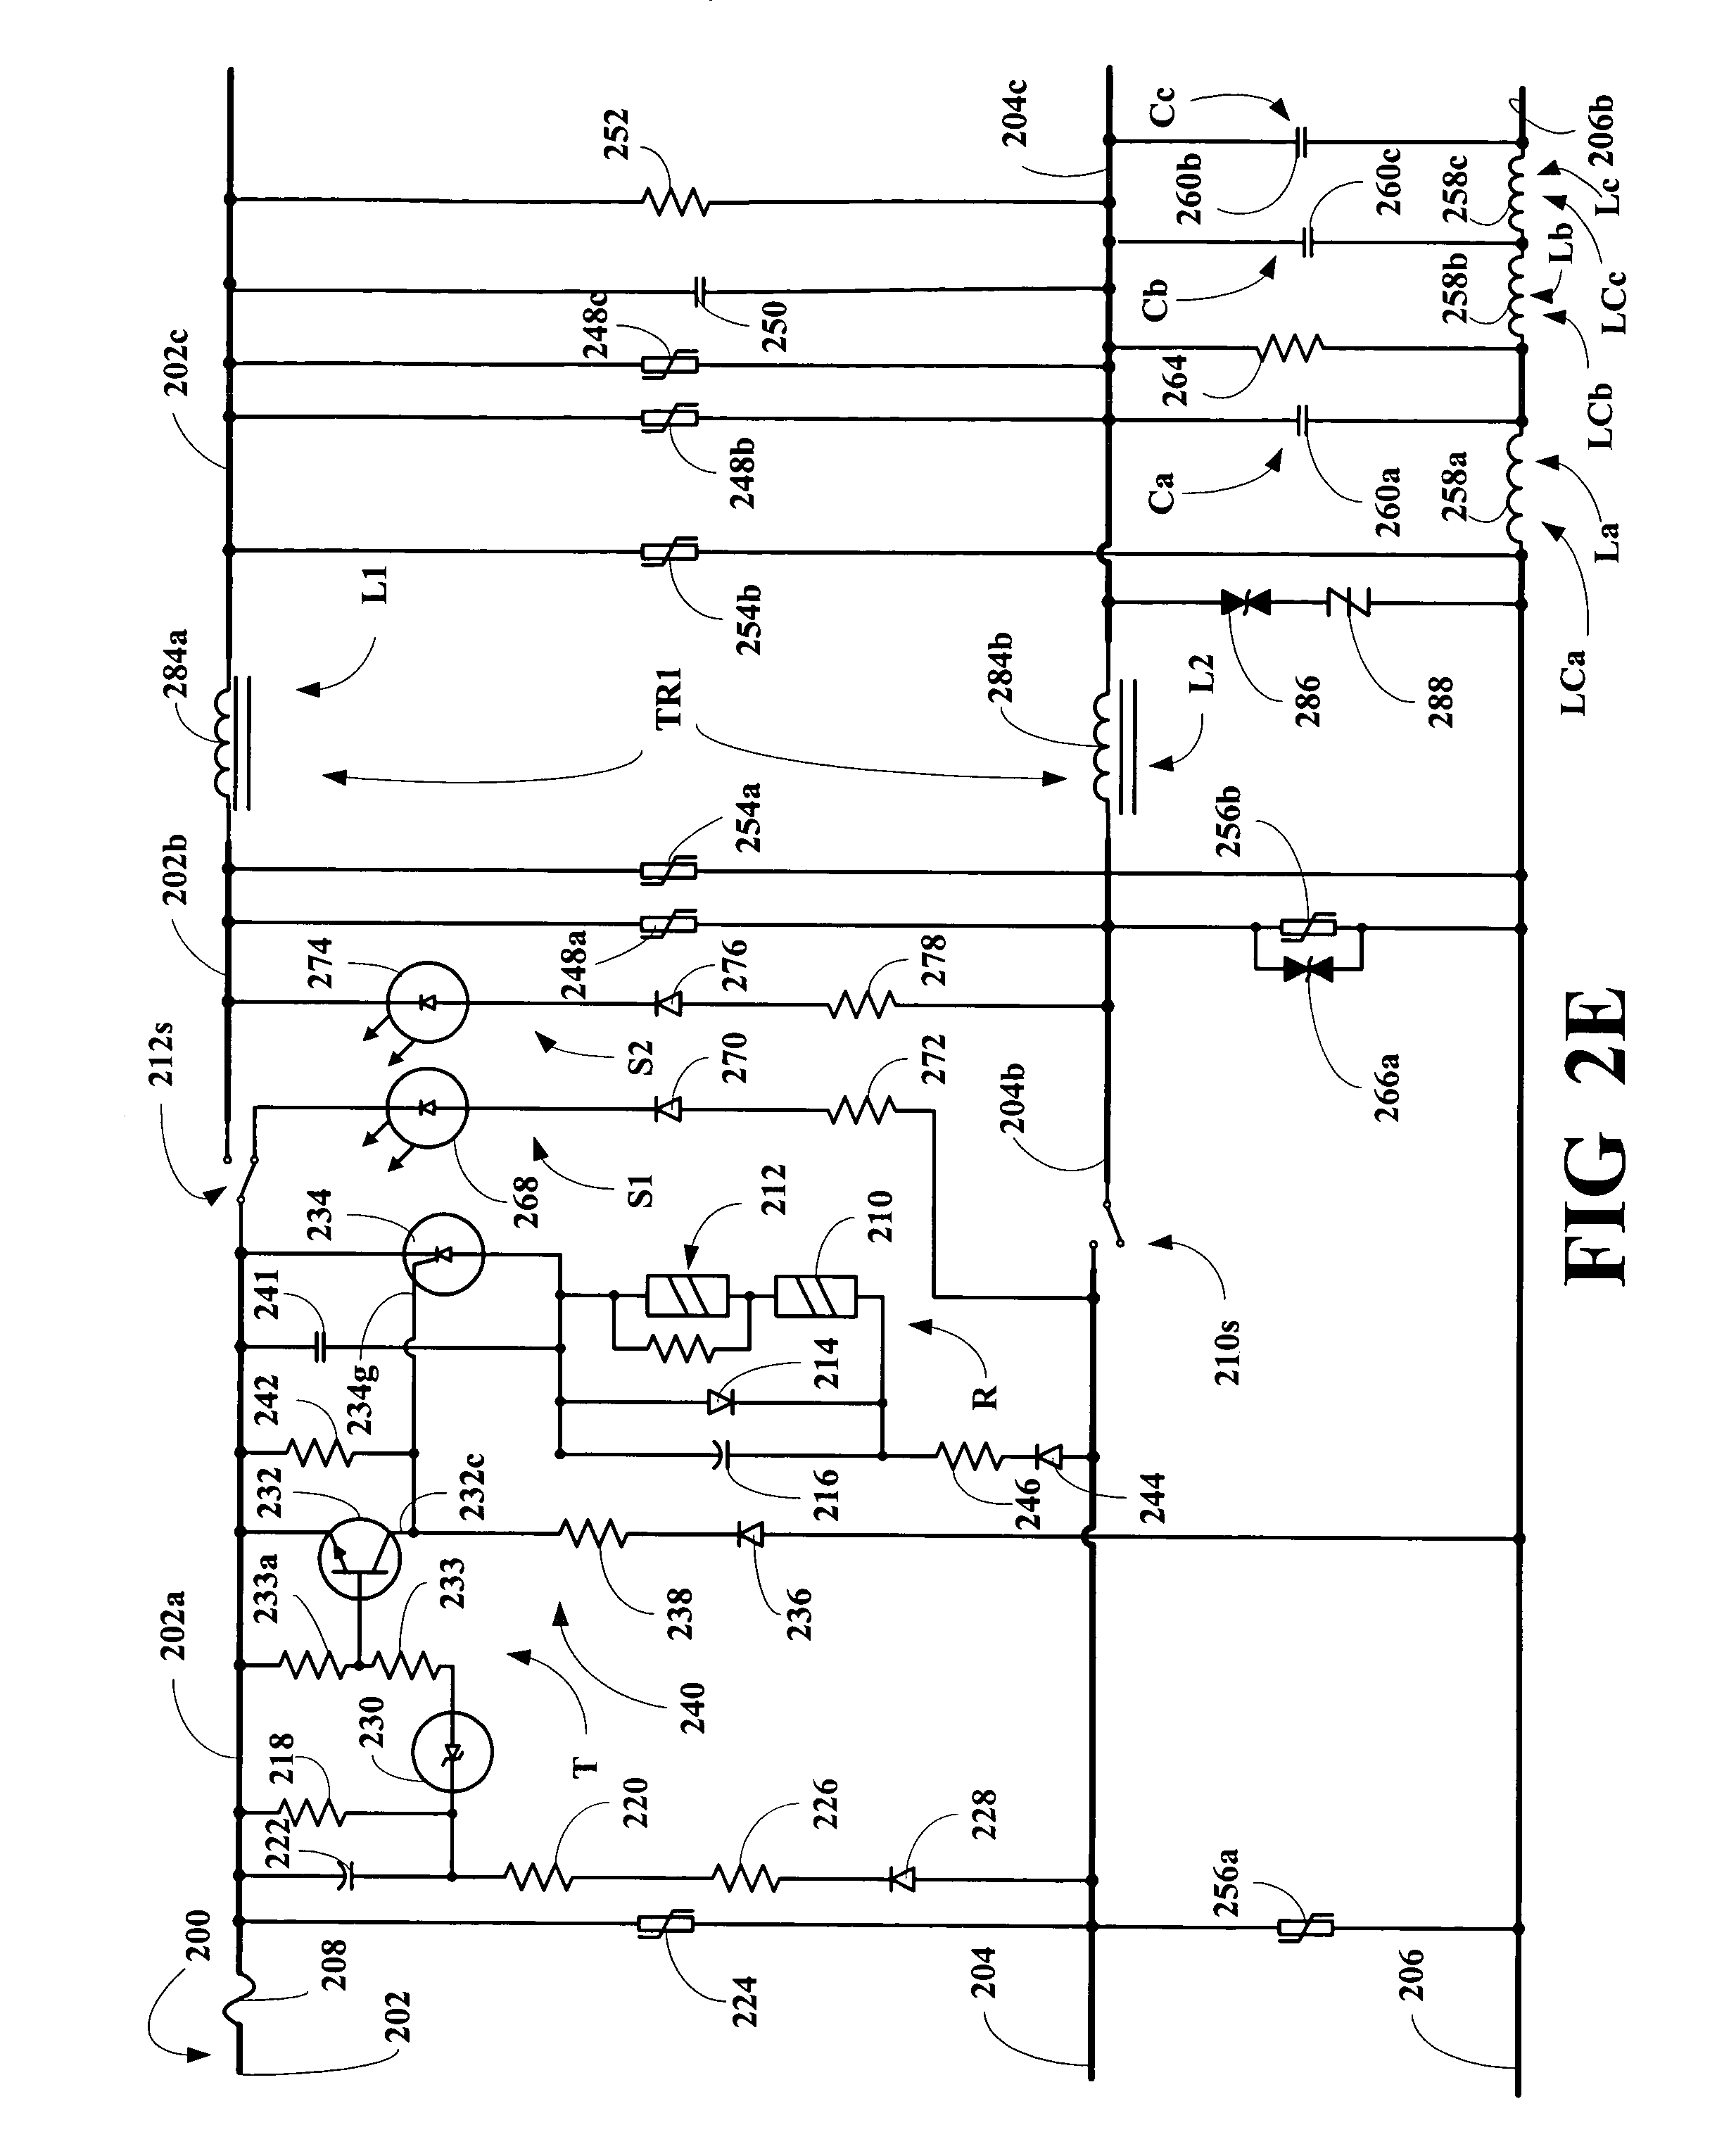 0v between hot and neutral trailer wiring diagram 4 pin round patent us20050088792 surge suppression apparatus